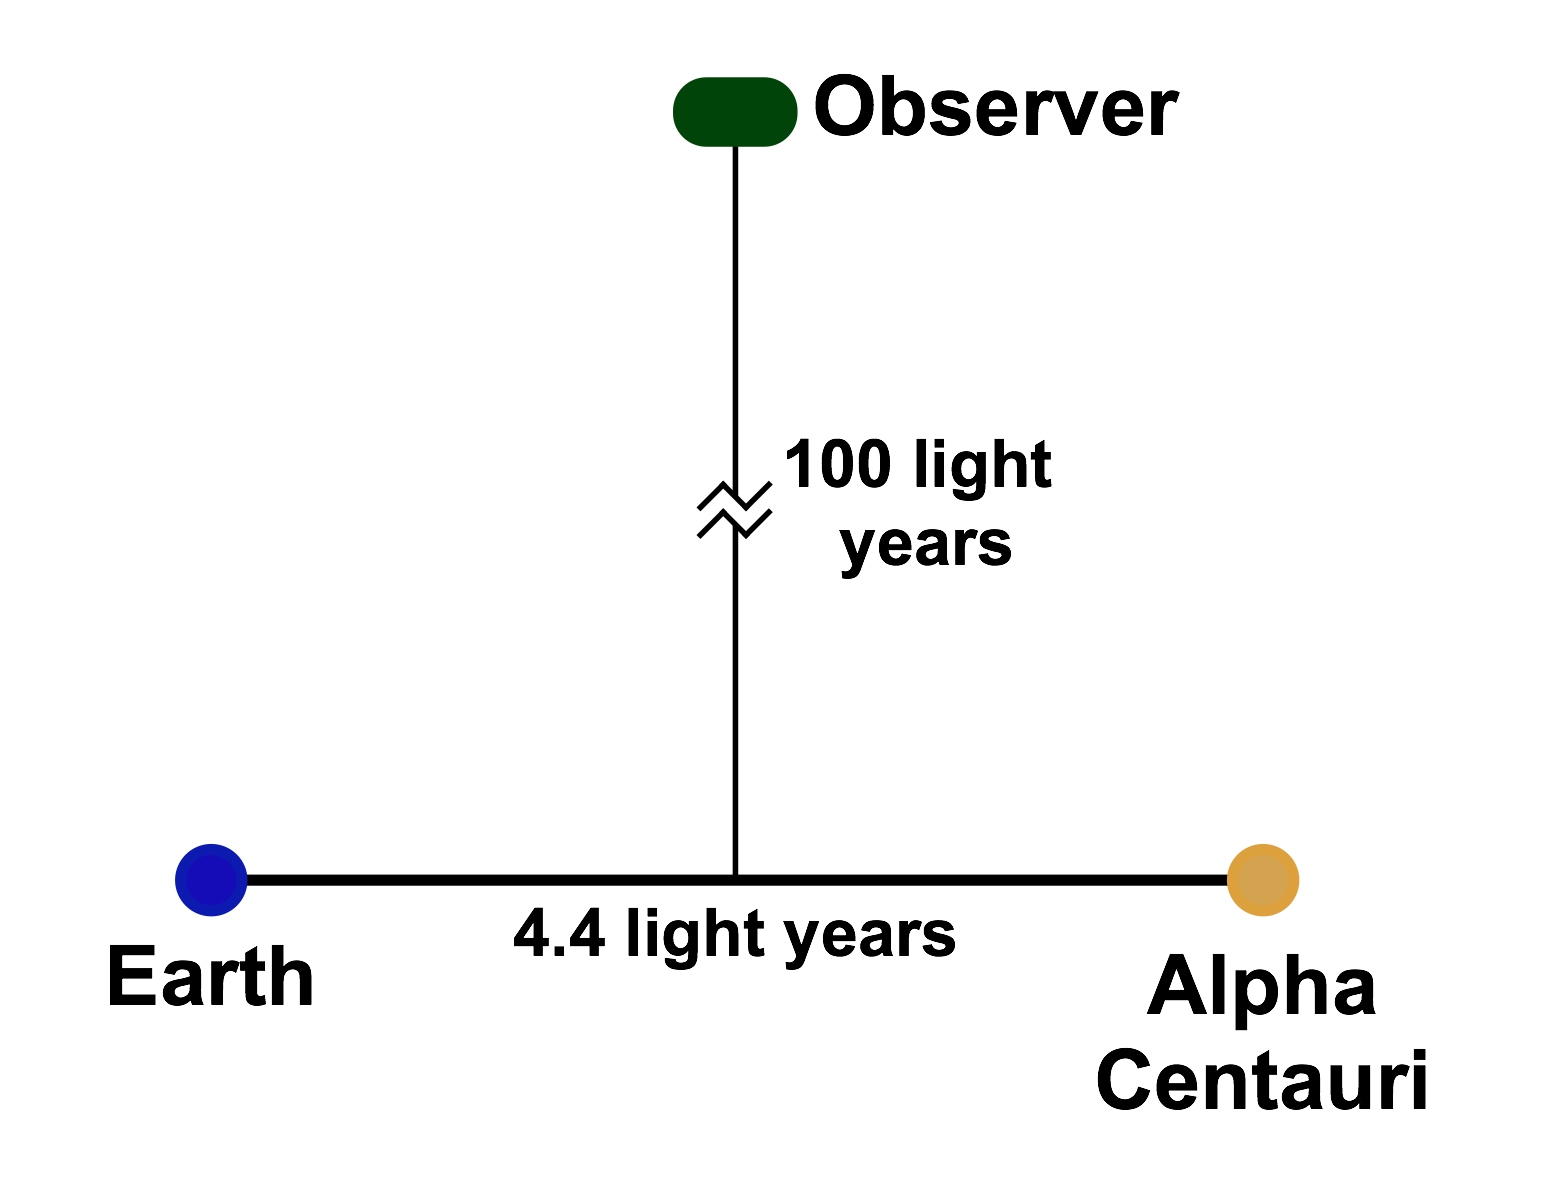 In the simpler case, our observer is equally distant from Earth and Alpha Centauri, 100 light years from an imaginary line connecting them.